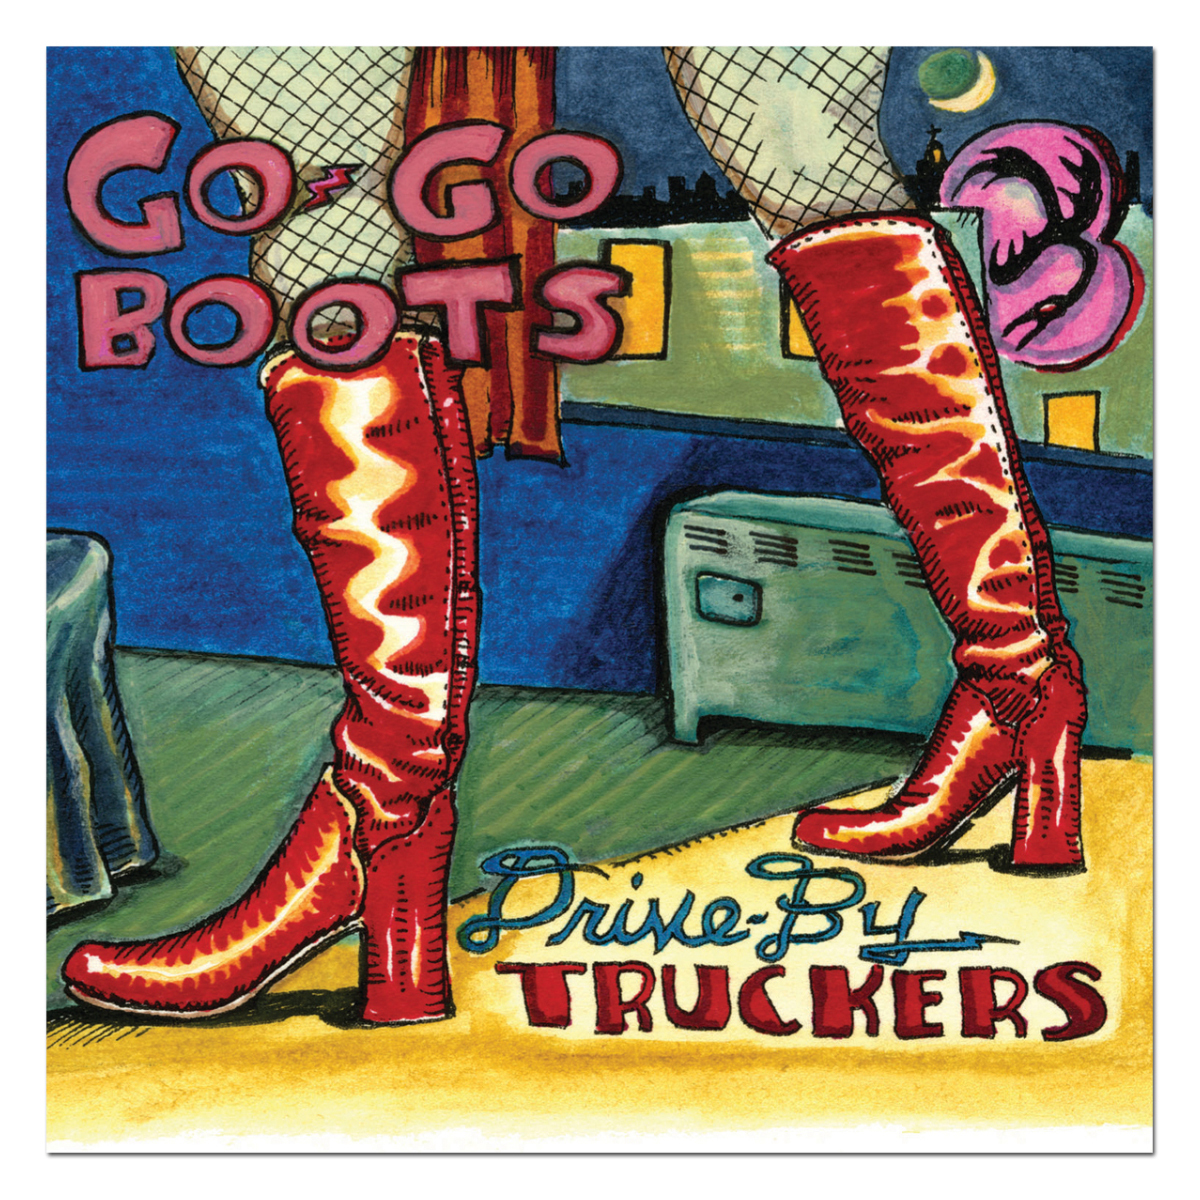 Drive-By Truckers Go-Go Boots CD